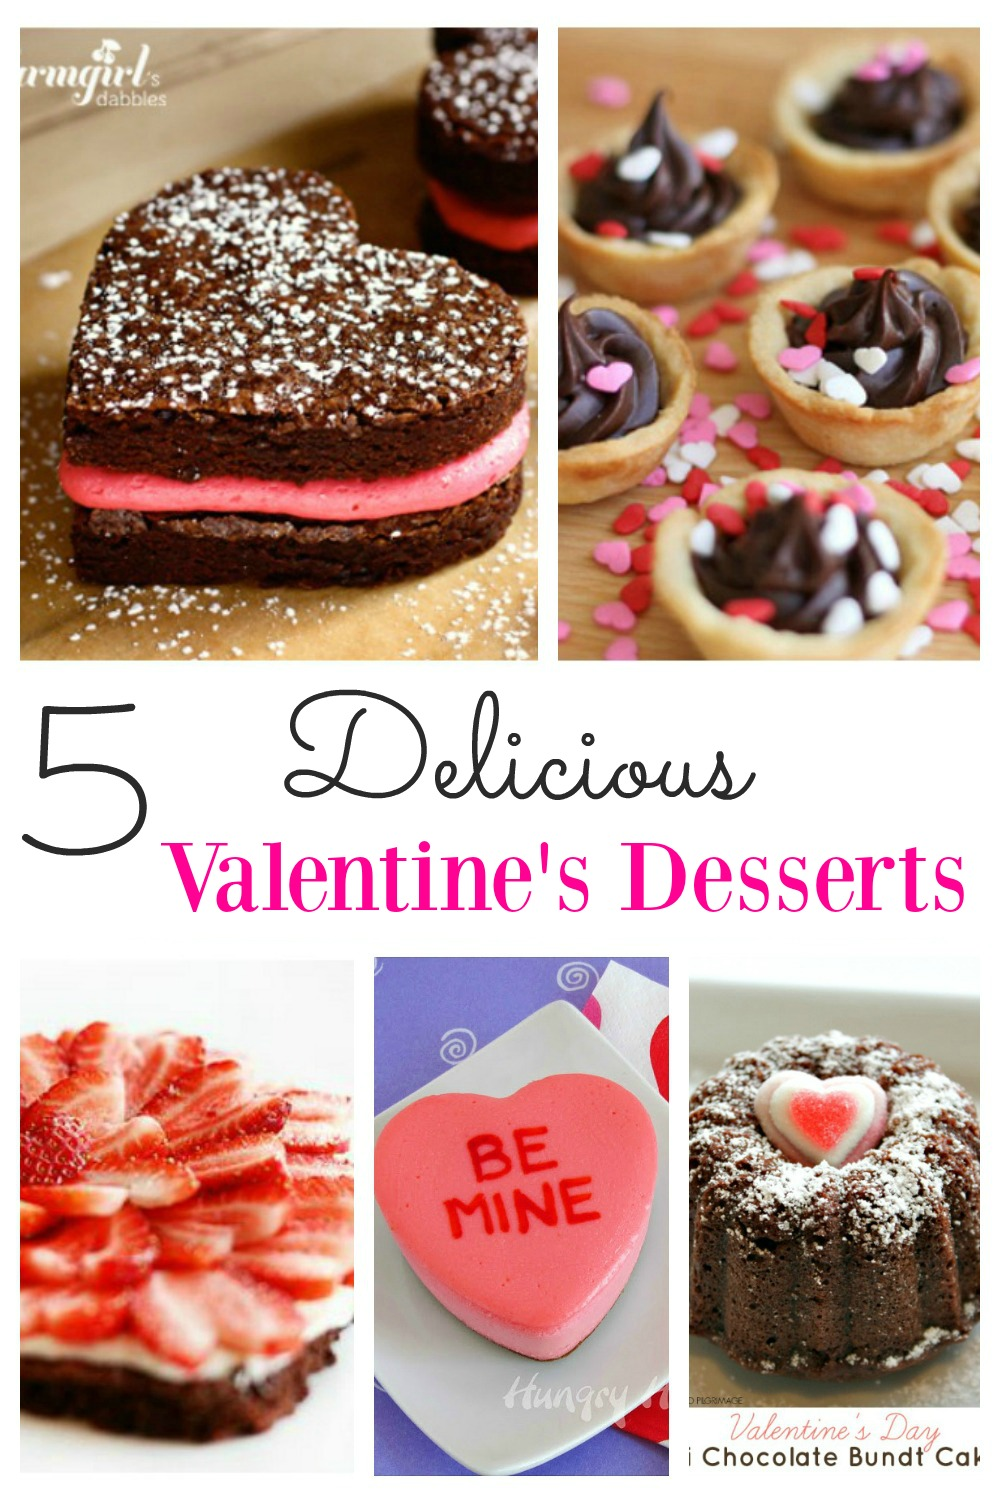 """This selection of Valentine's desserts is the perfect way to say """"I Love You"""".  There is no need to struggle looking for dessert recipes when  any one of these would be an absolute winner.   Valentine's day will not be complete without one of these delights."""